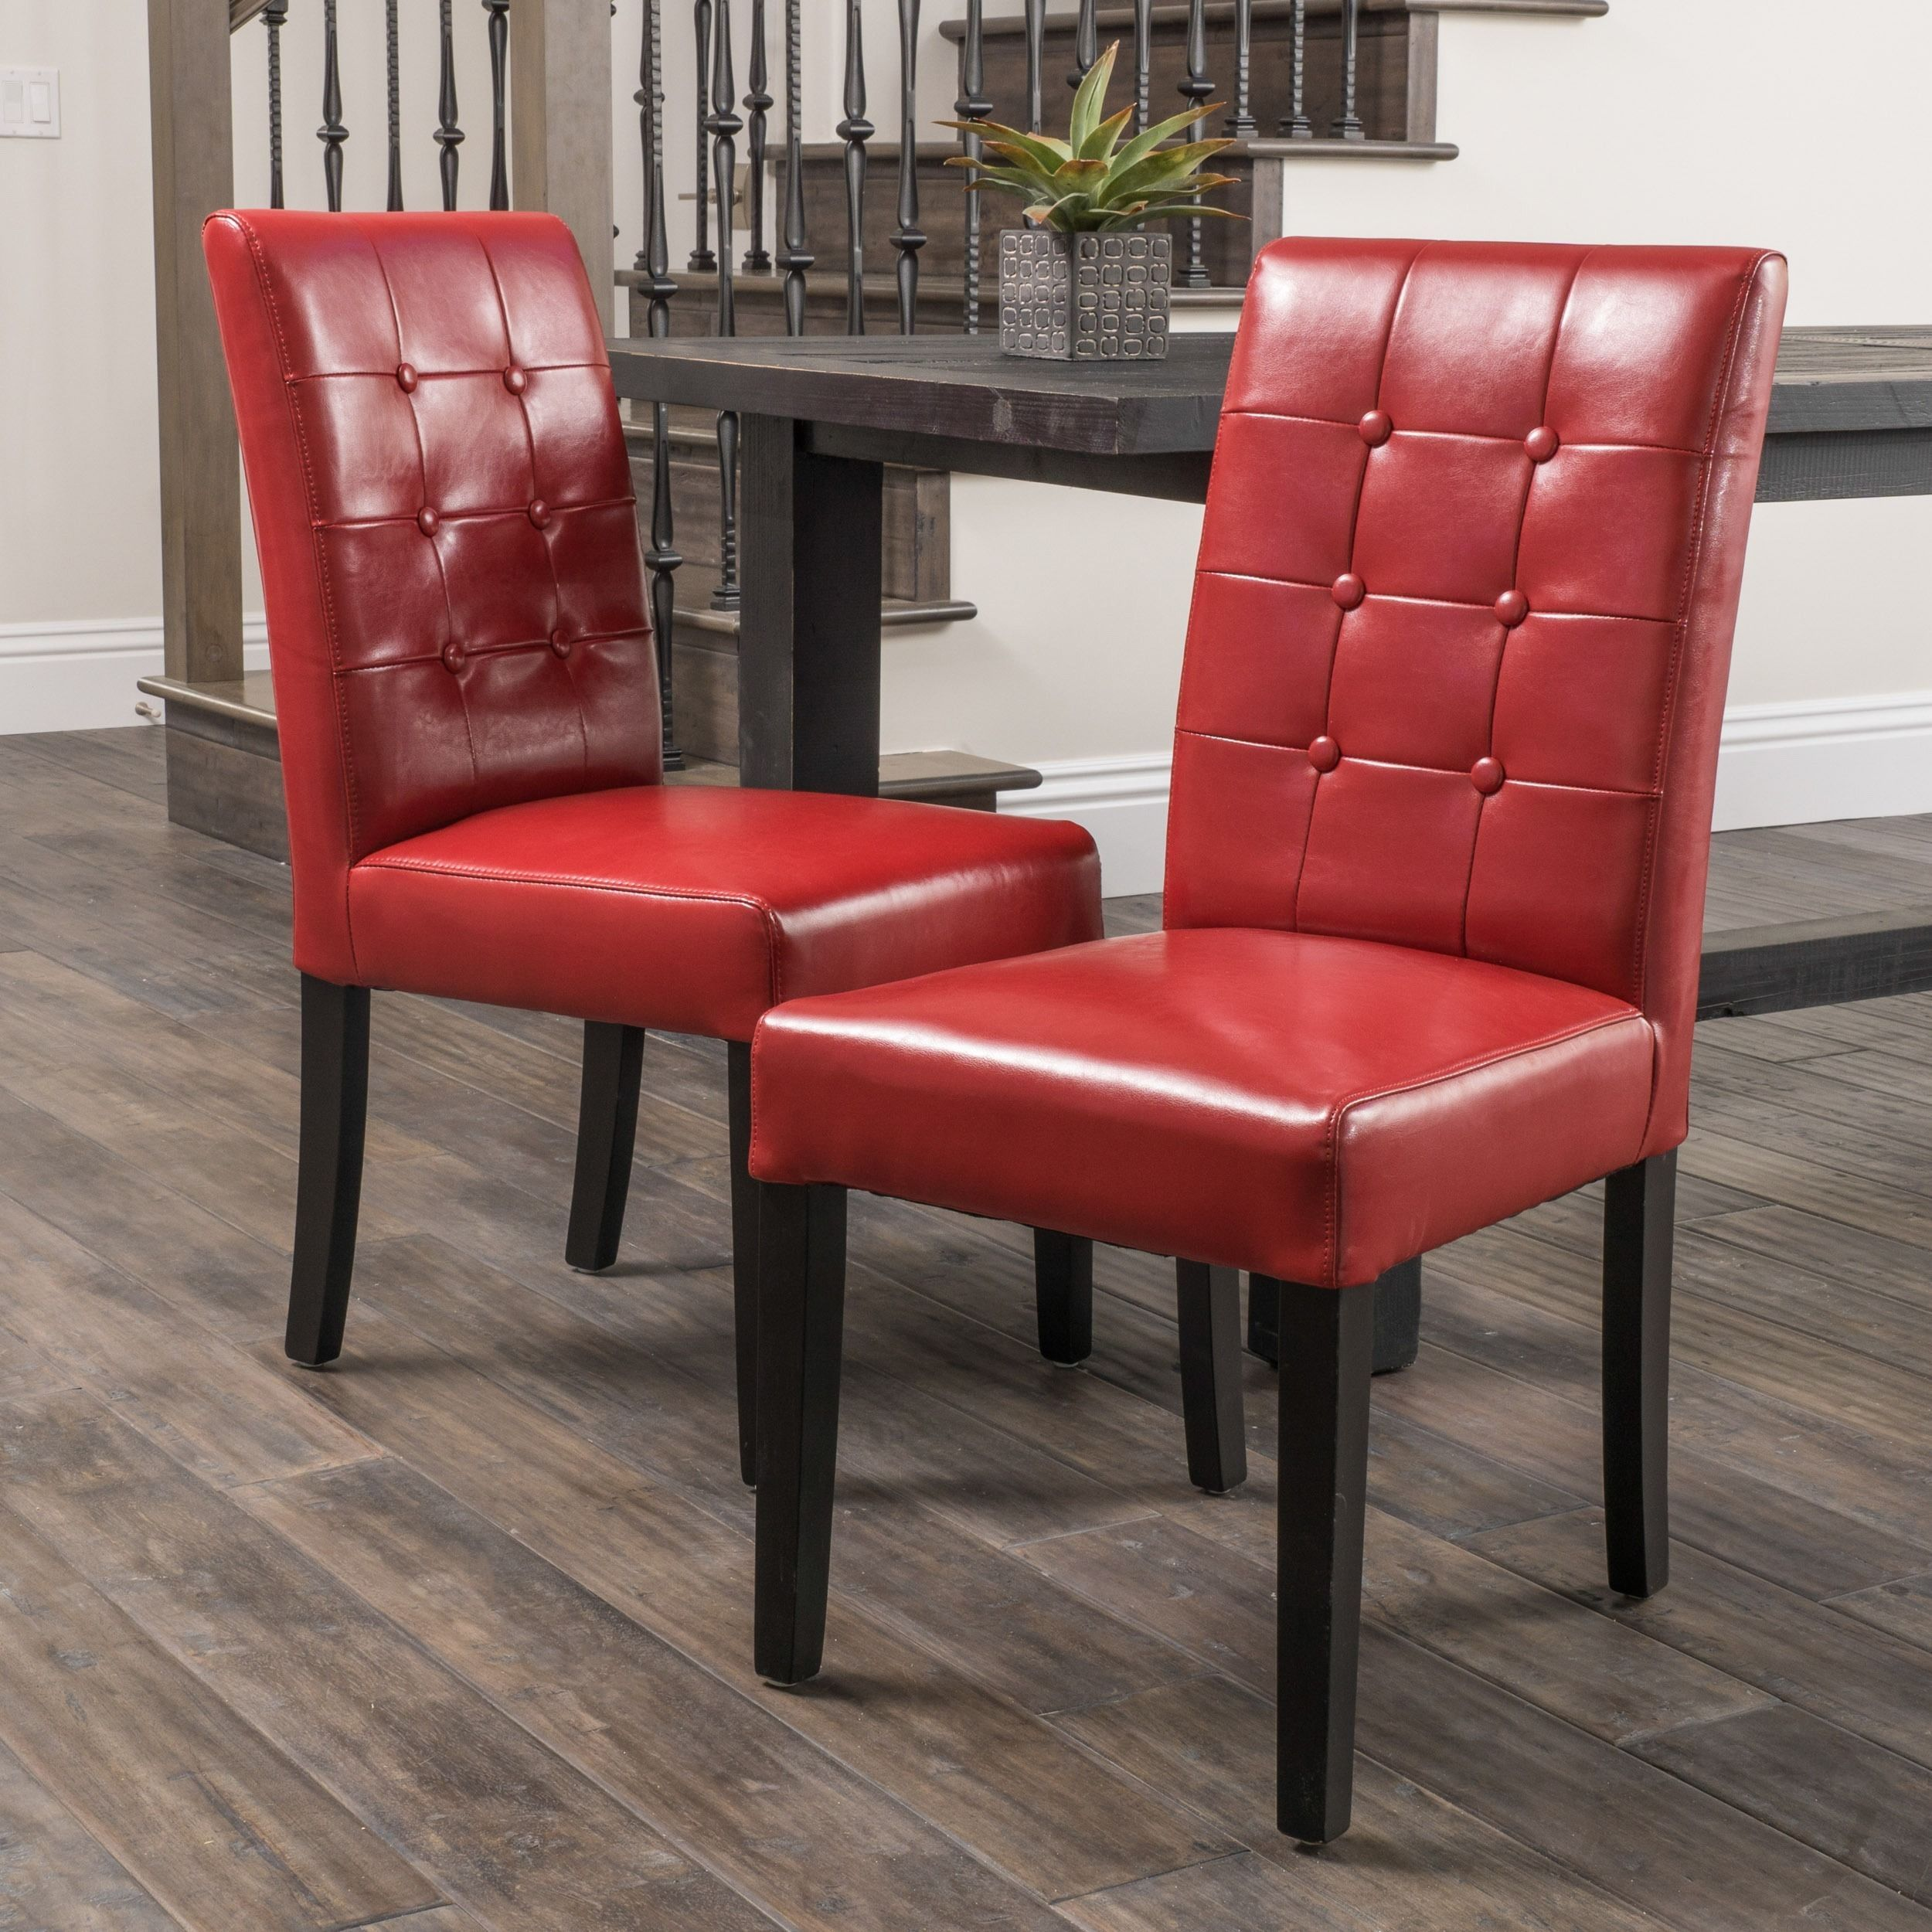 Roland Red Bonded Leather Dining Chairs By Christopher Knight Home Set Of 2 Chair